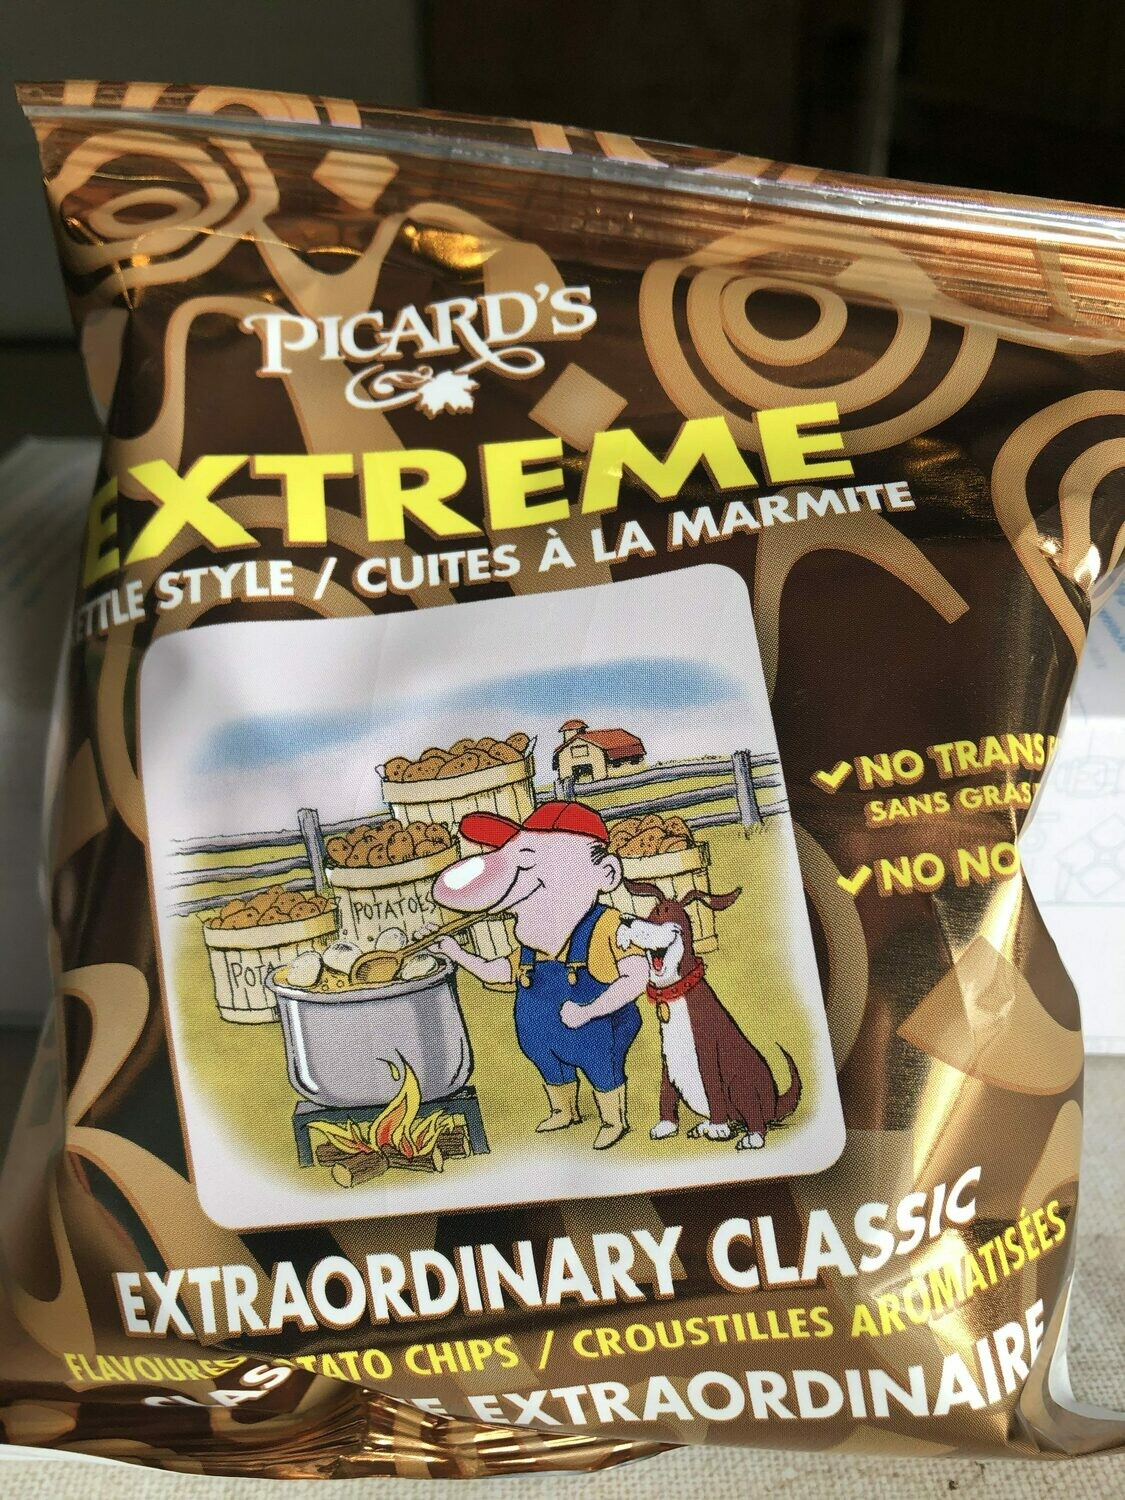 Picard Chips